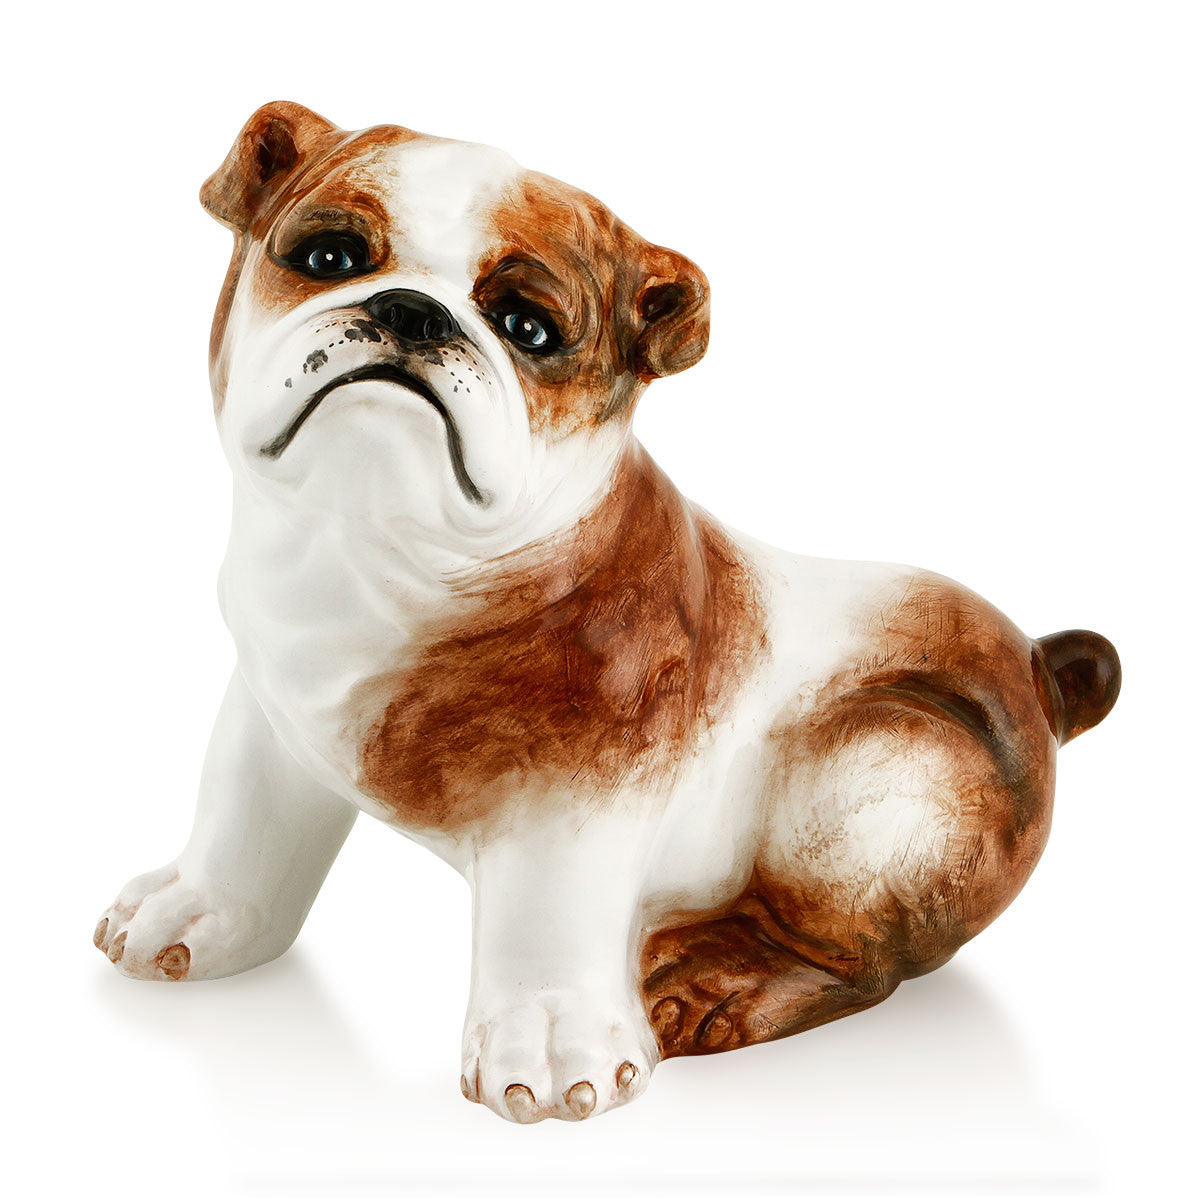 Ceramic sitting bulldog statue with lifelike details